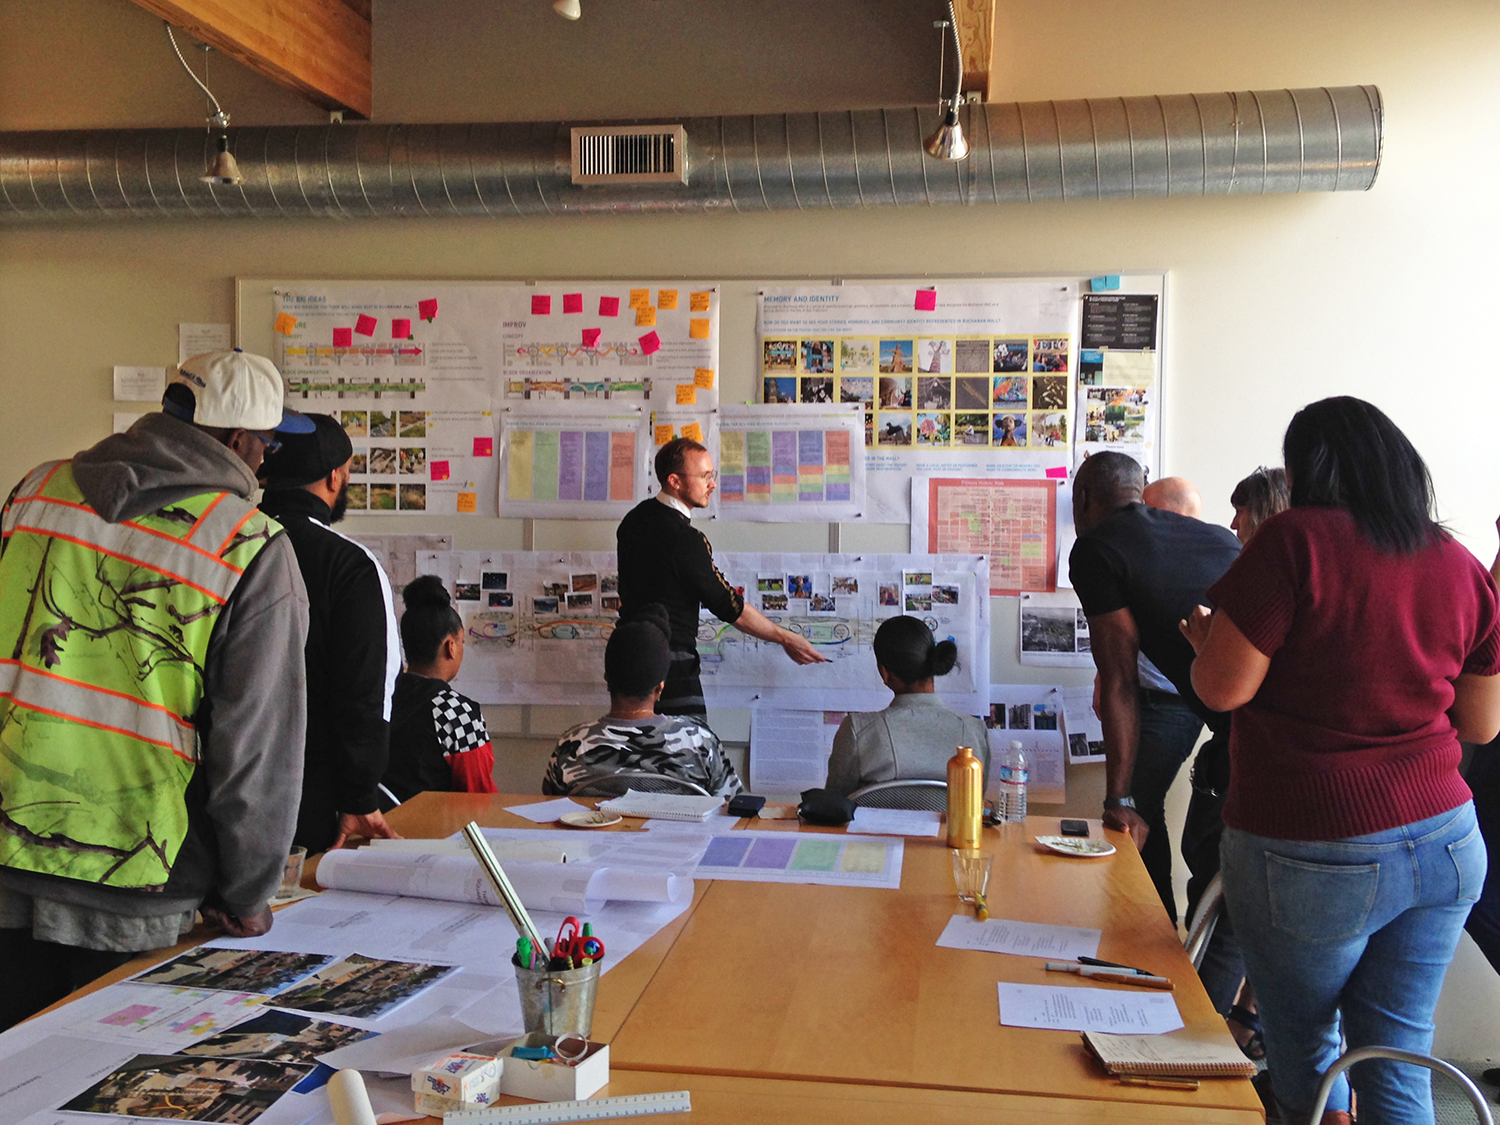 Key stakeholders provide input during a team charrette at O|CB's studio